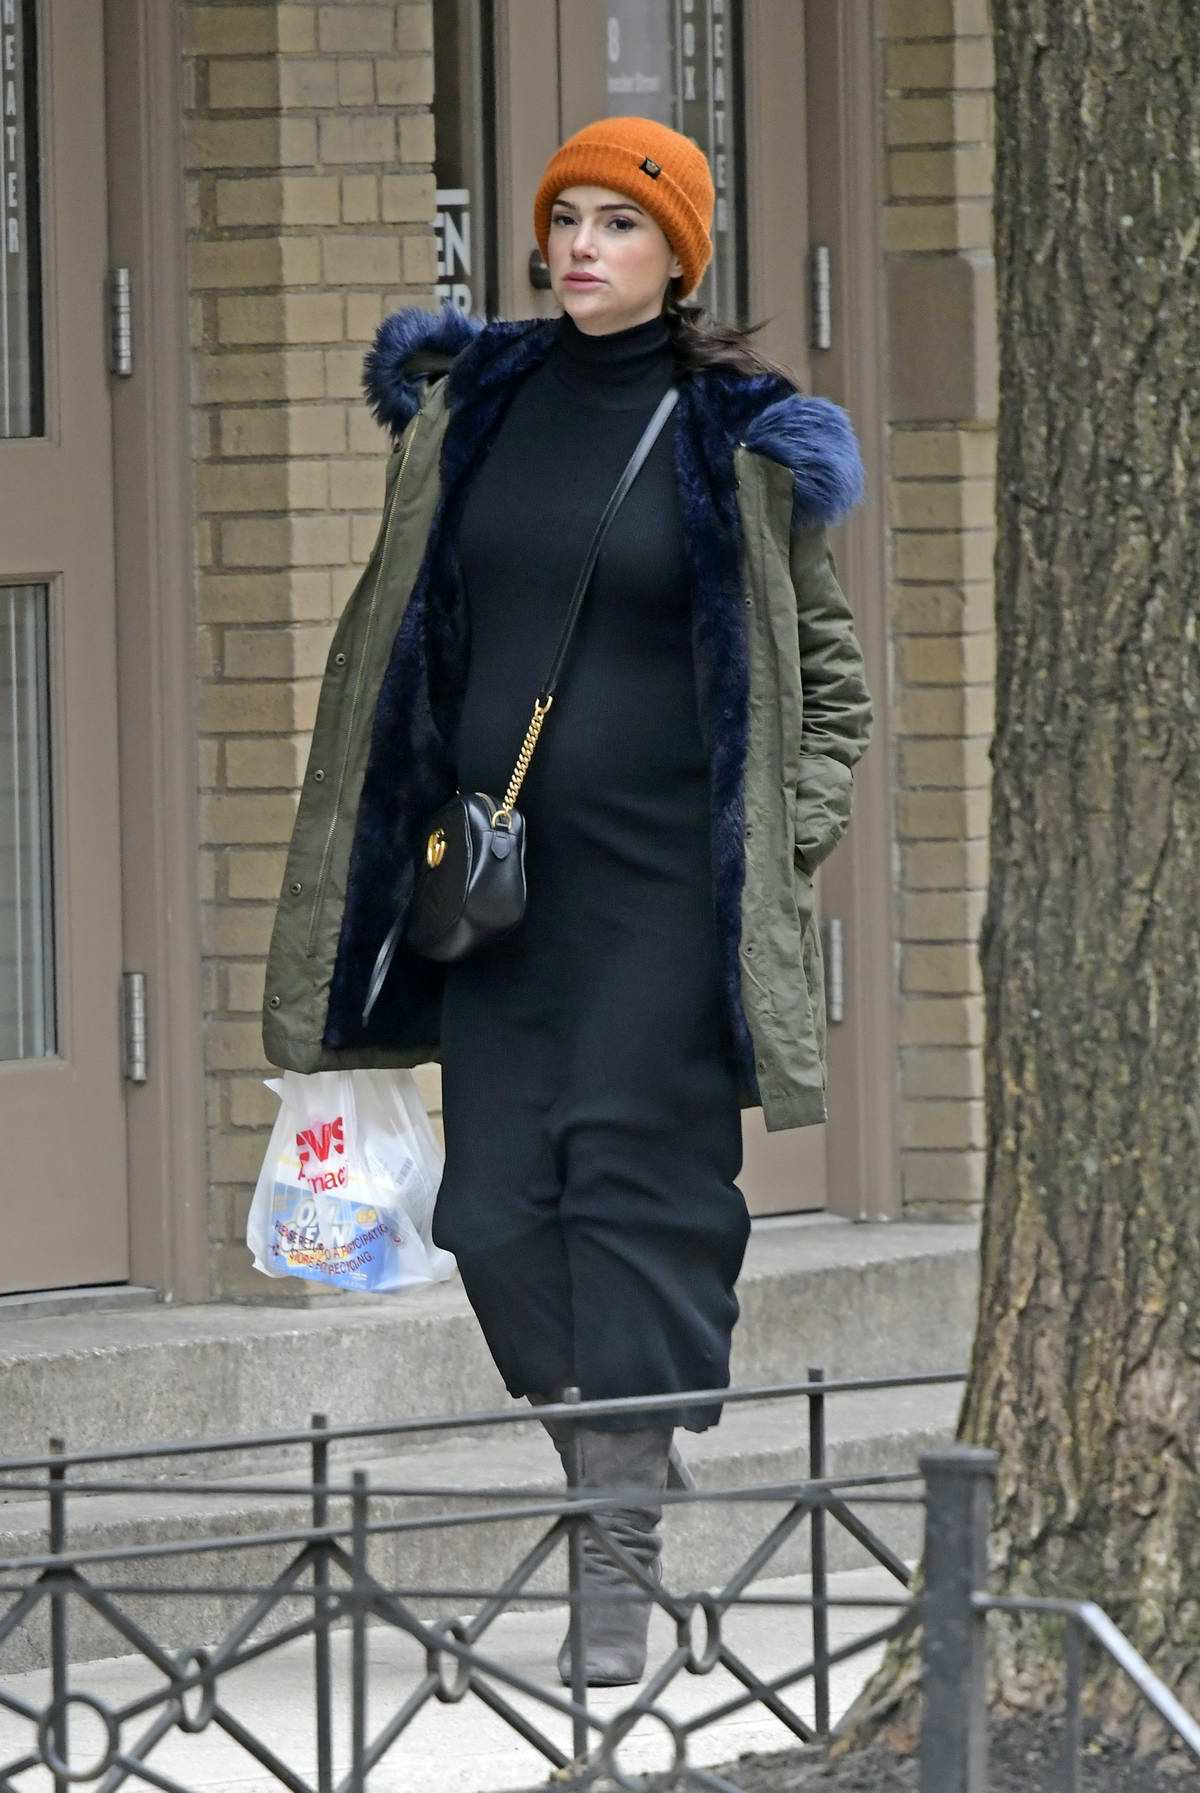 Janet Montgomery shows off her baby bump while out shopping at CVS pharmacy in SoHo, New York City